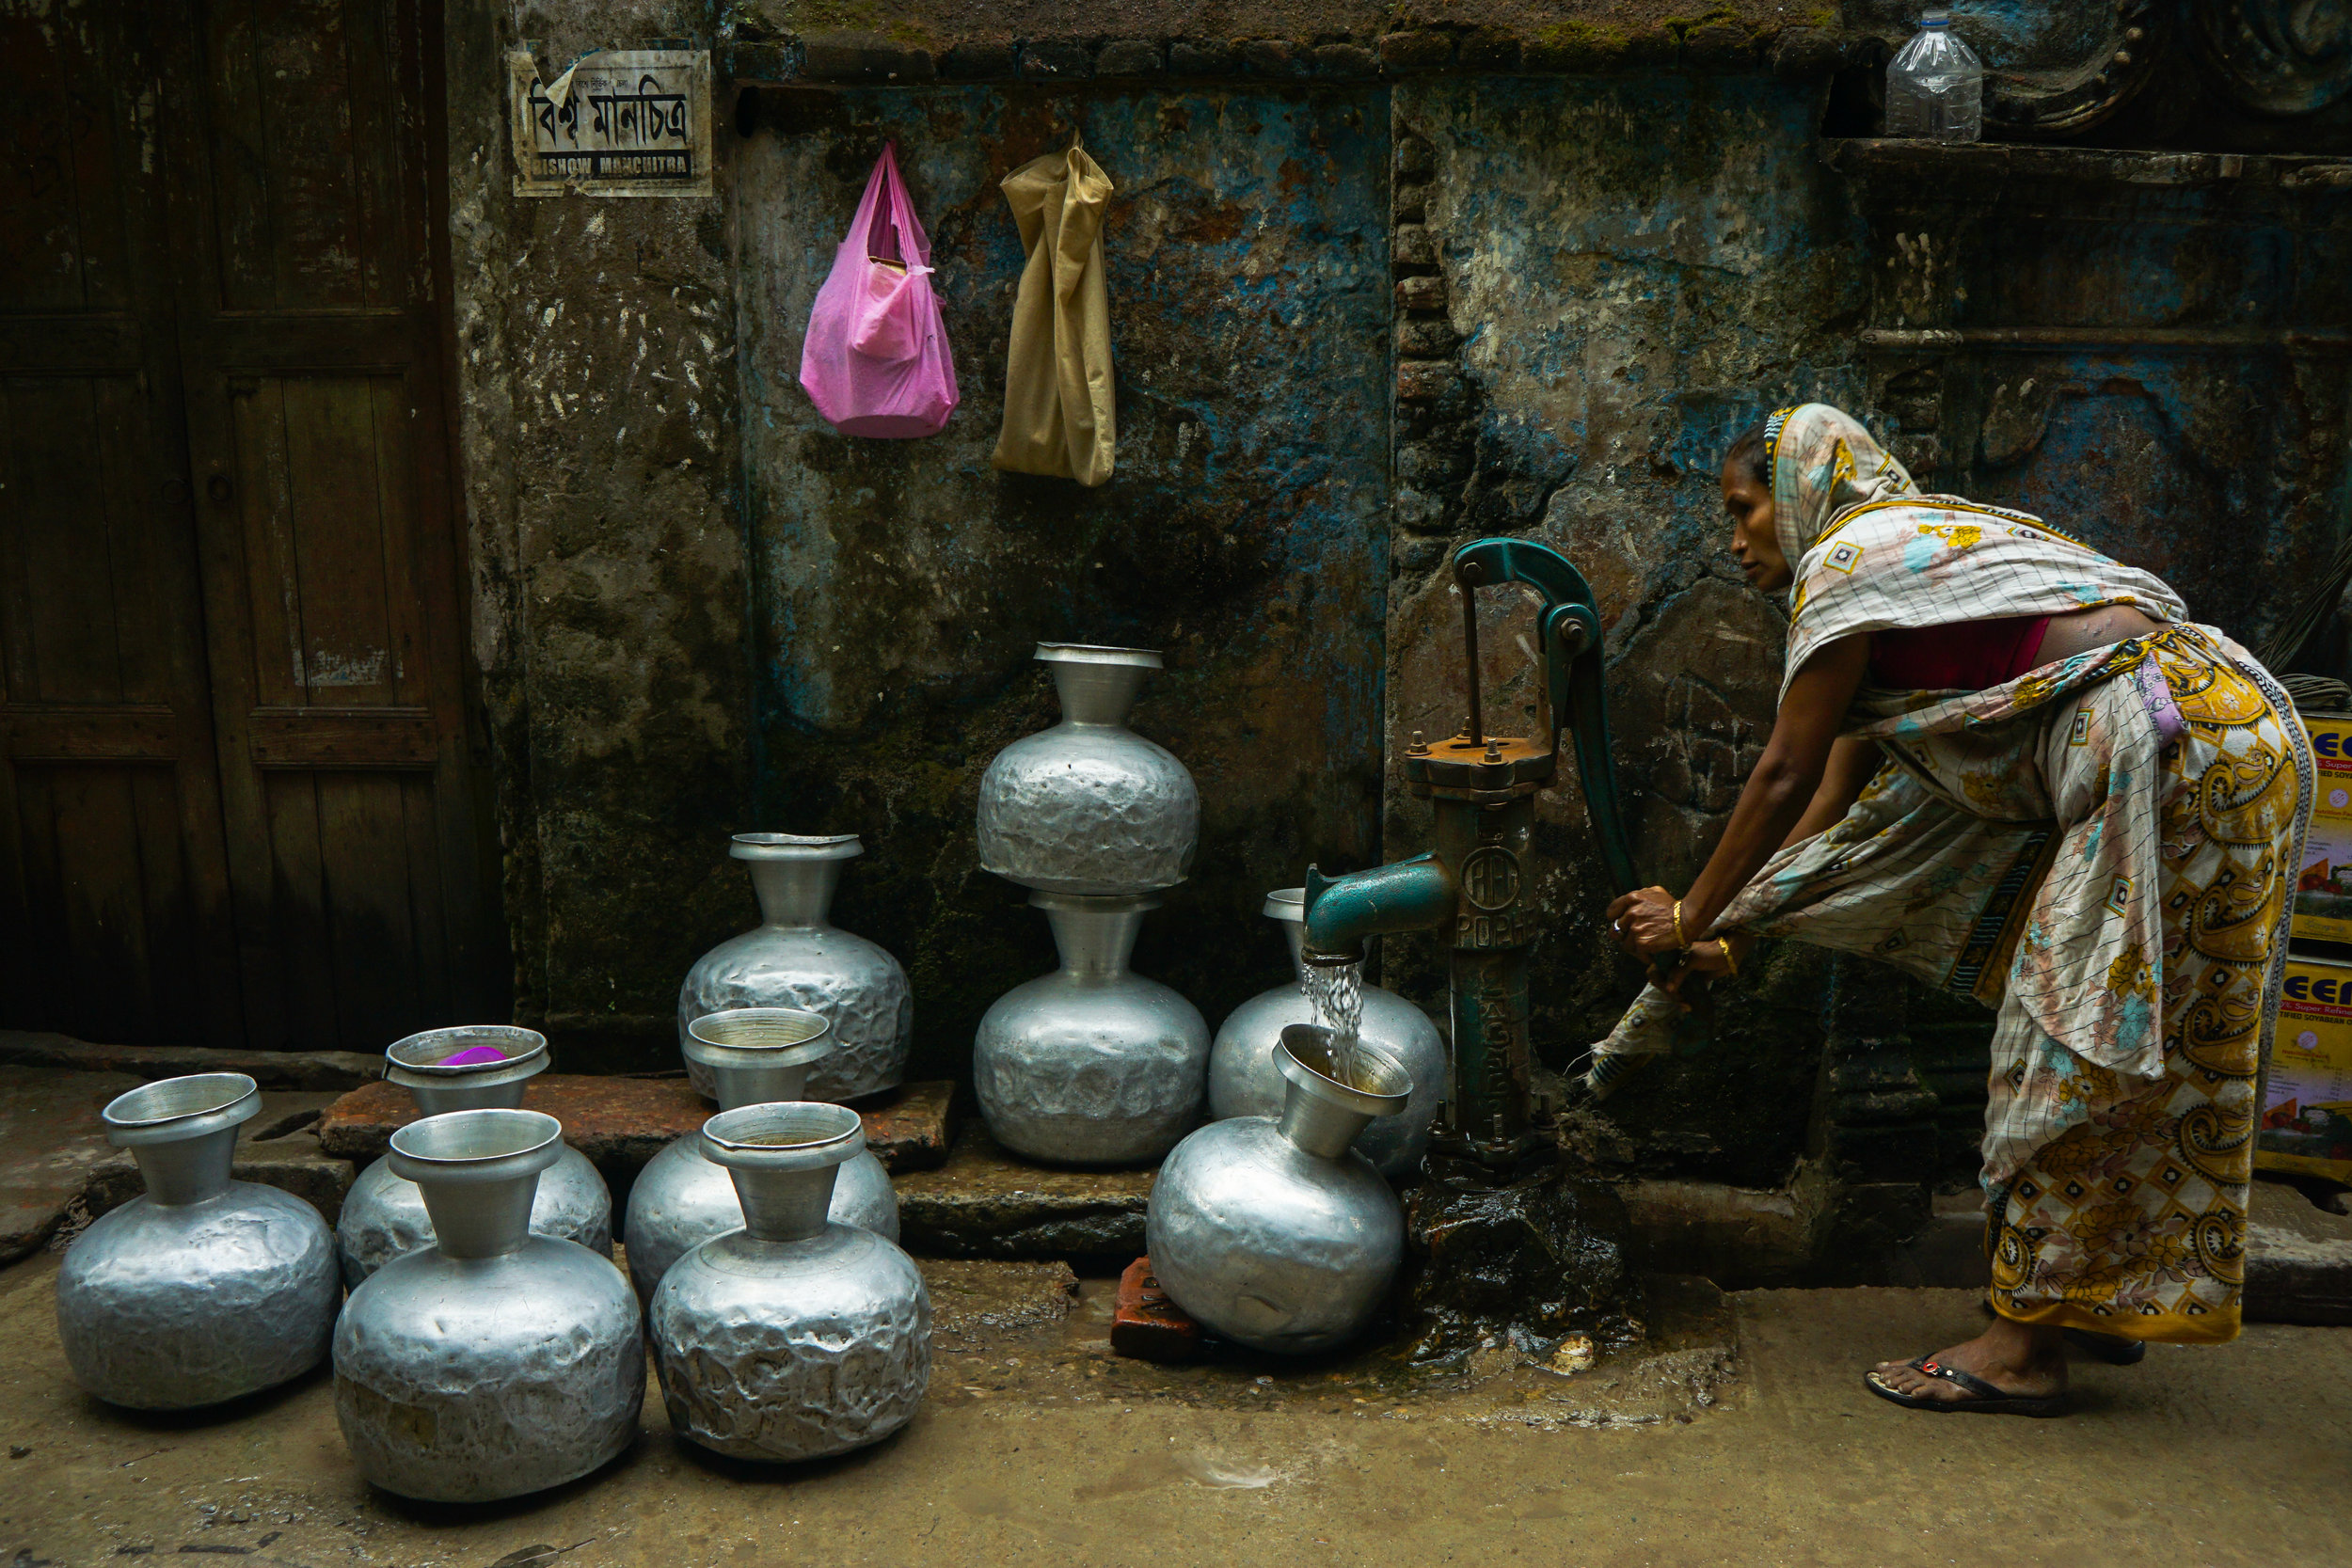 Kazi Mushfiq Hossain. Water Collecting From Street. Courtesy Pink Lady Food Photographer of the Year.